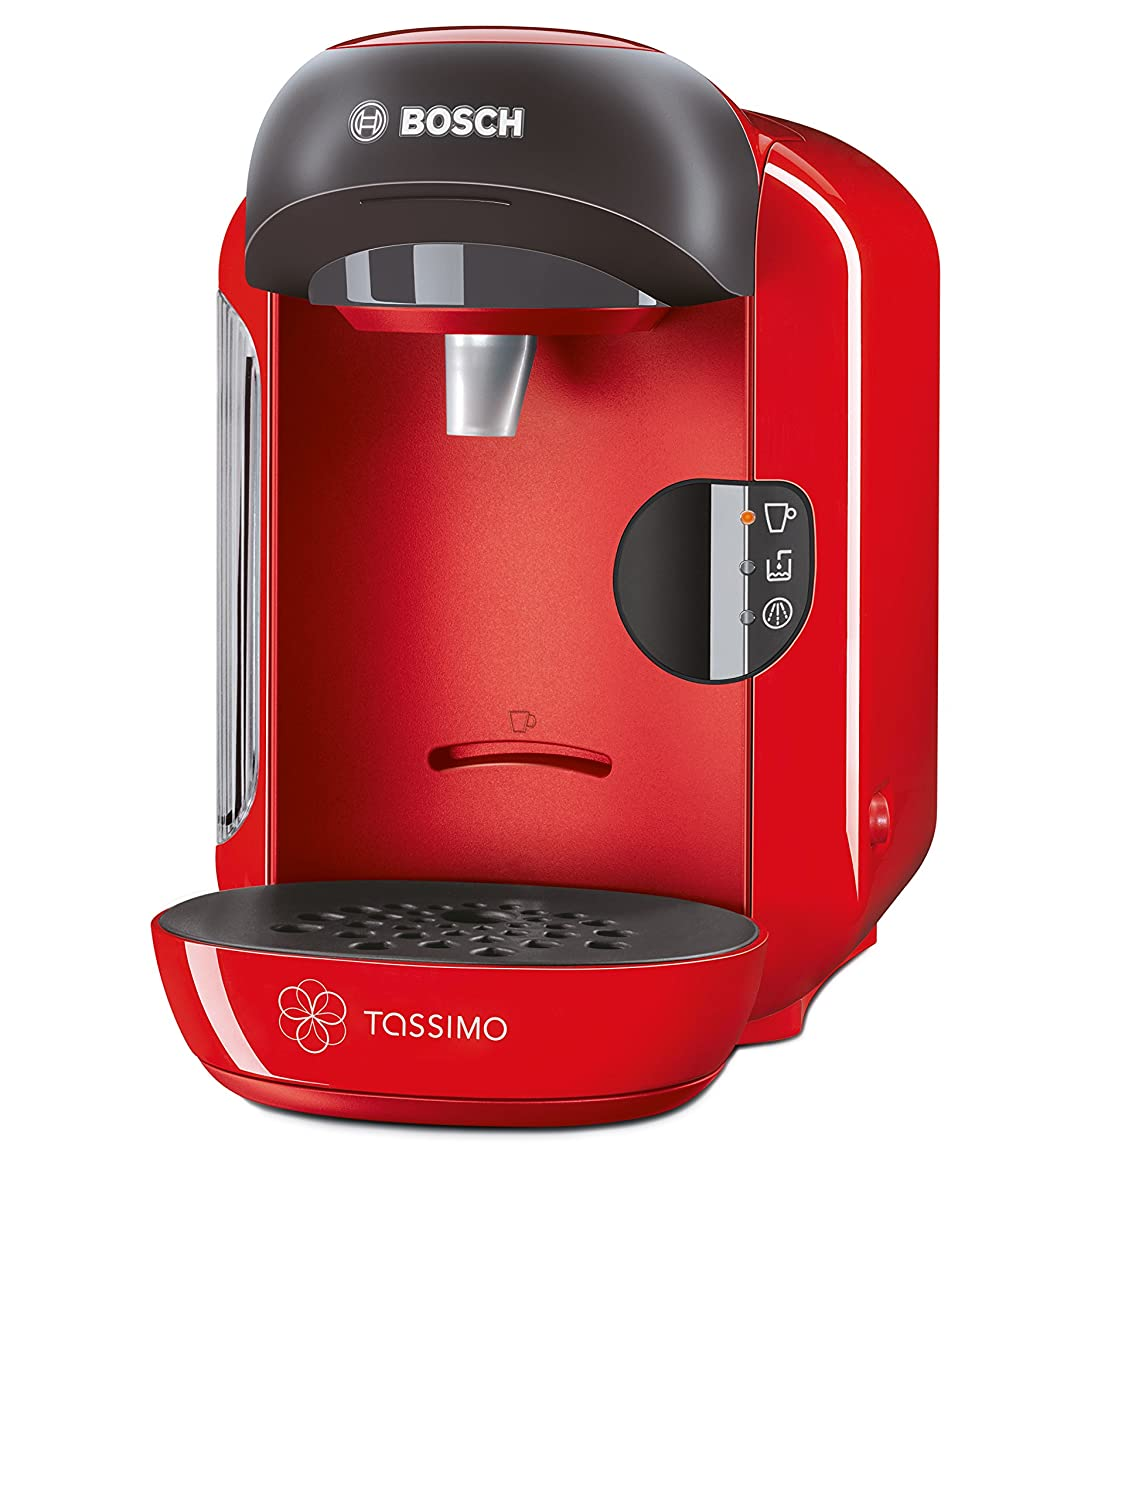 Tassimo Coffee Maker Does Red Light Mean : Tassimo Coffee Machine Red Light Iron Blog